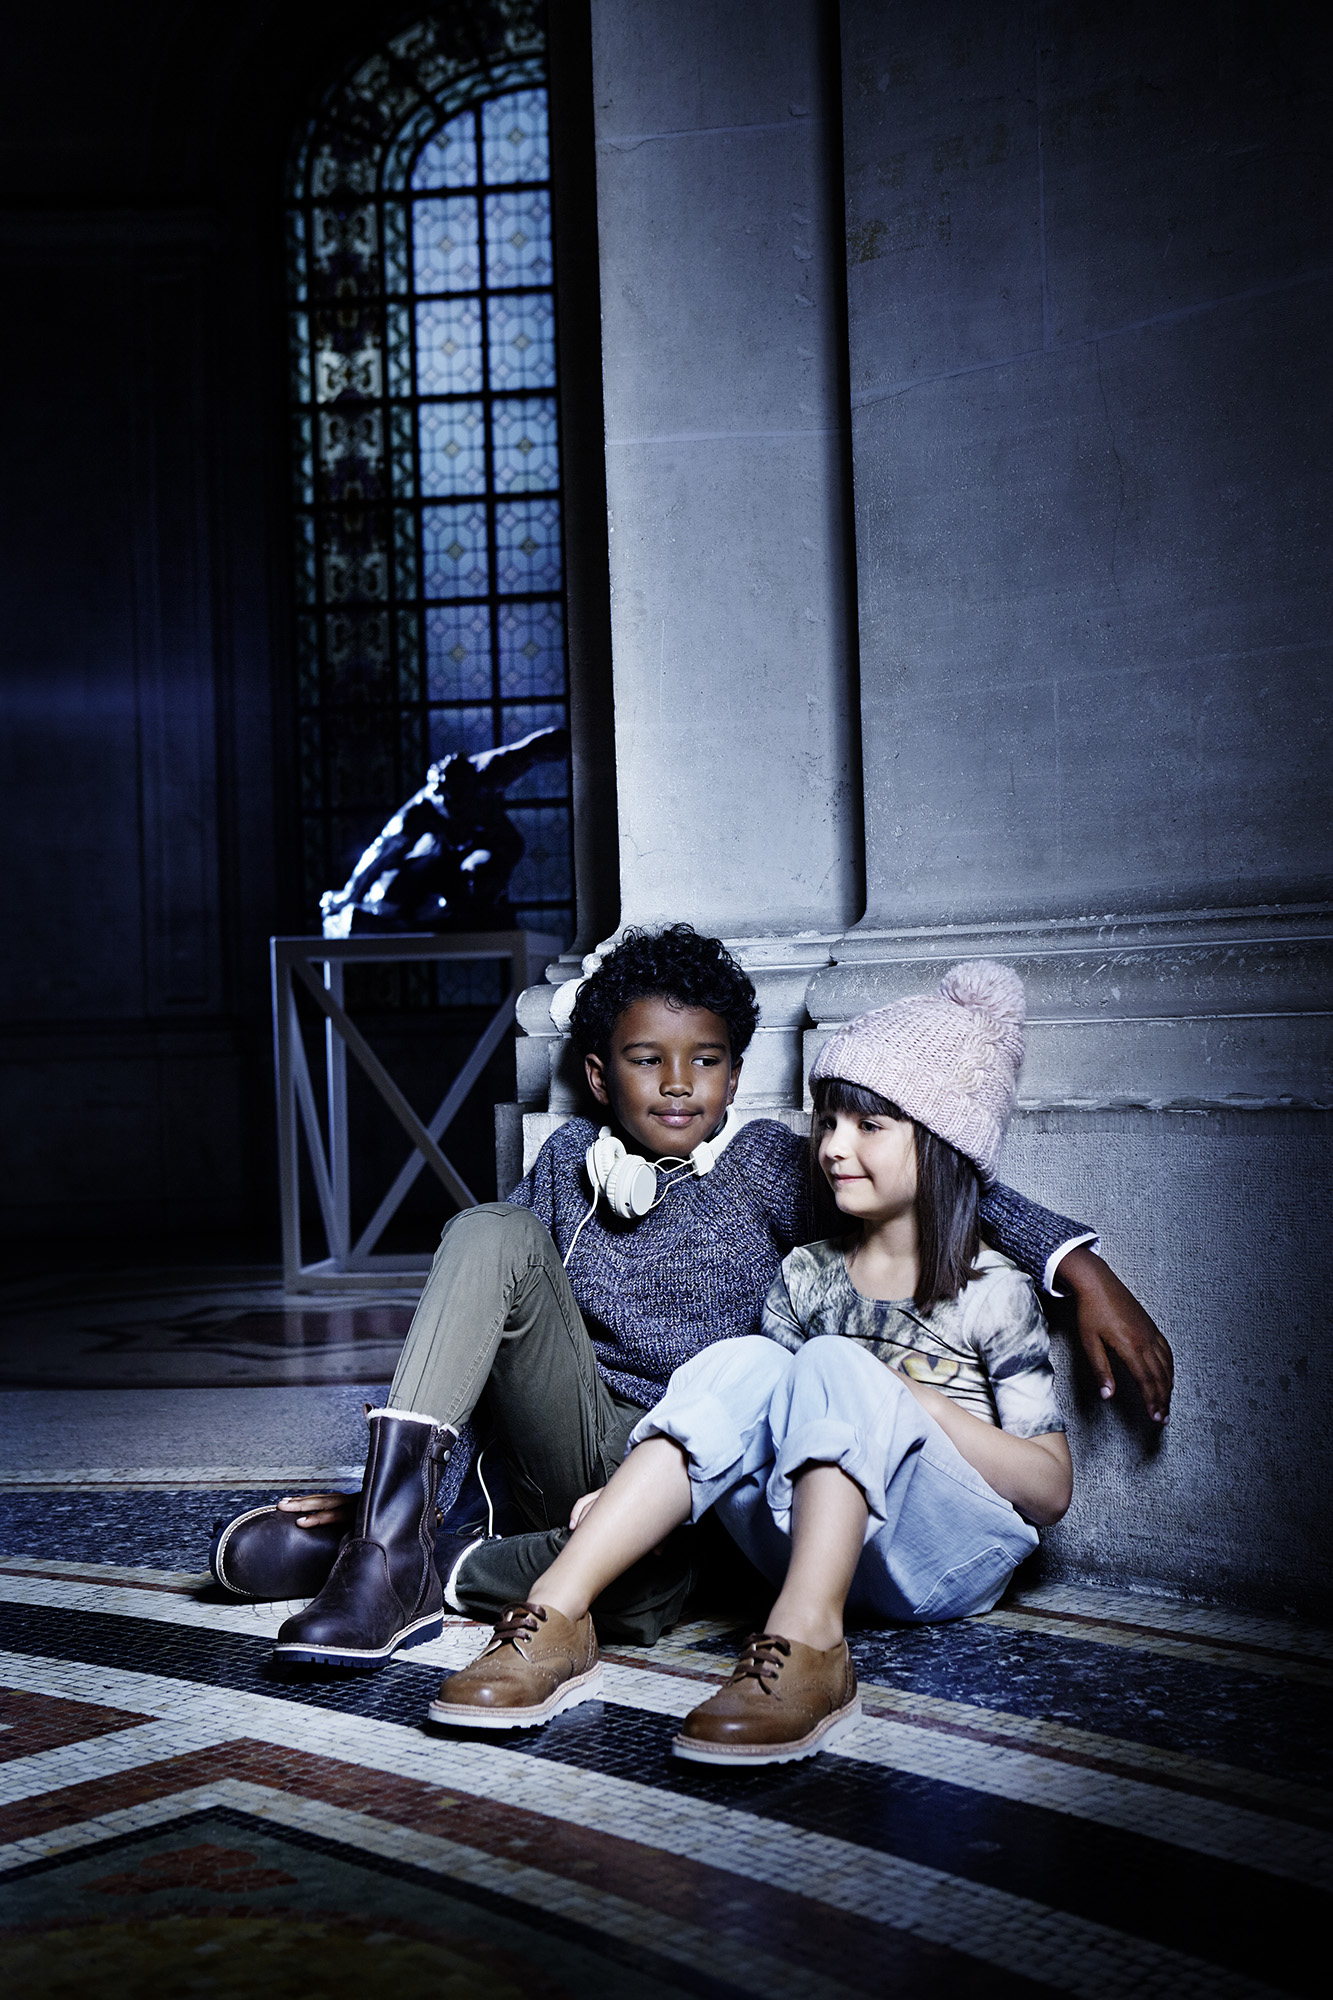 Ilve Llittle girl and boy sitting in gallery